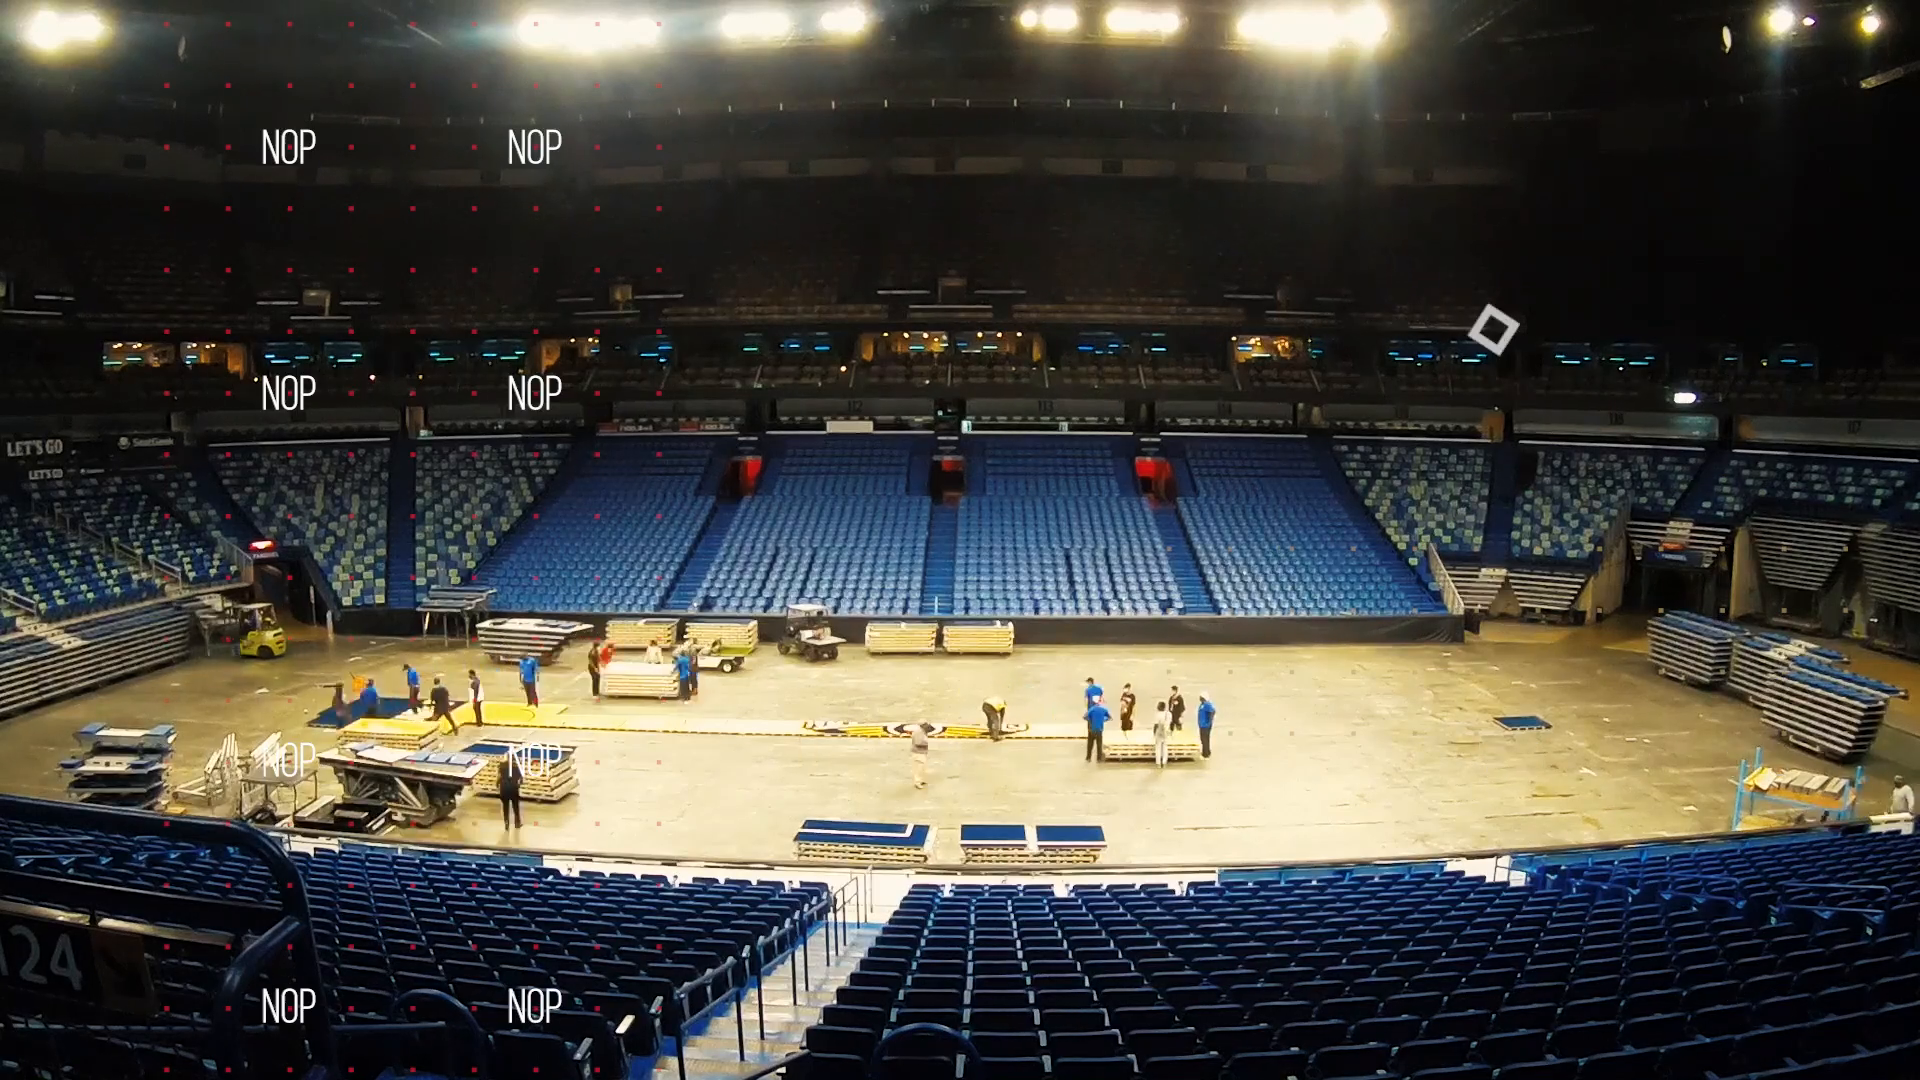 Pelicans basketball court install time-lapse for the 2021-22 NBA season